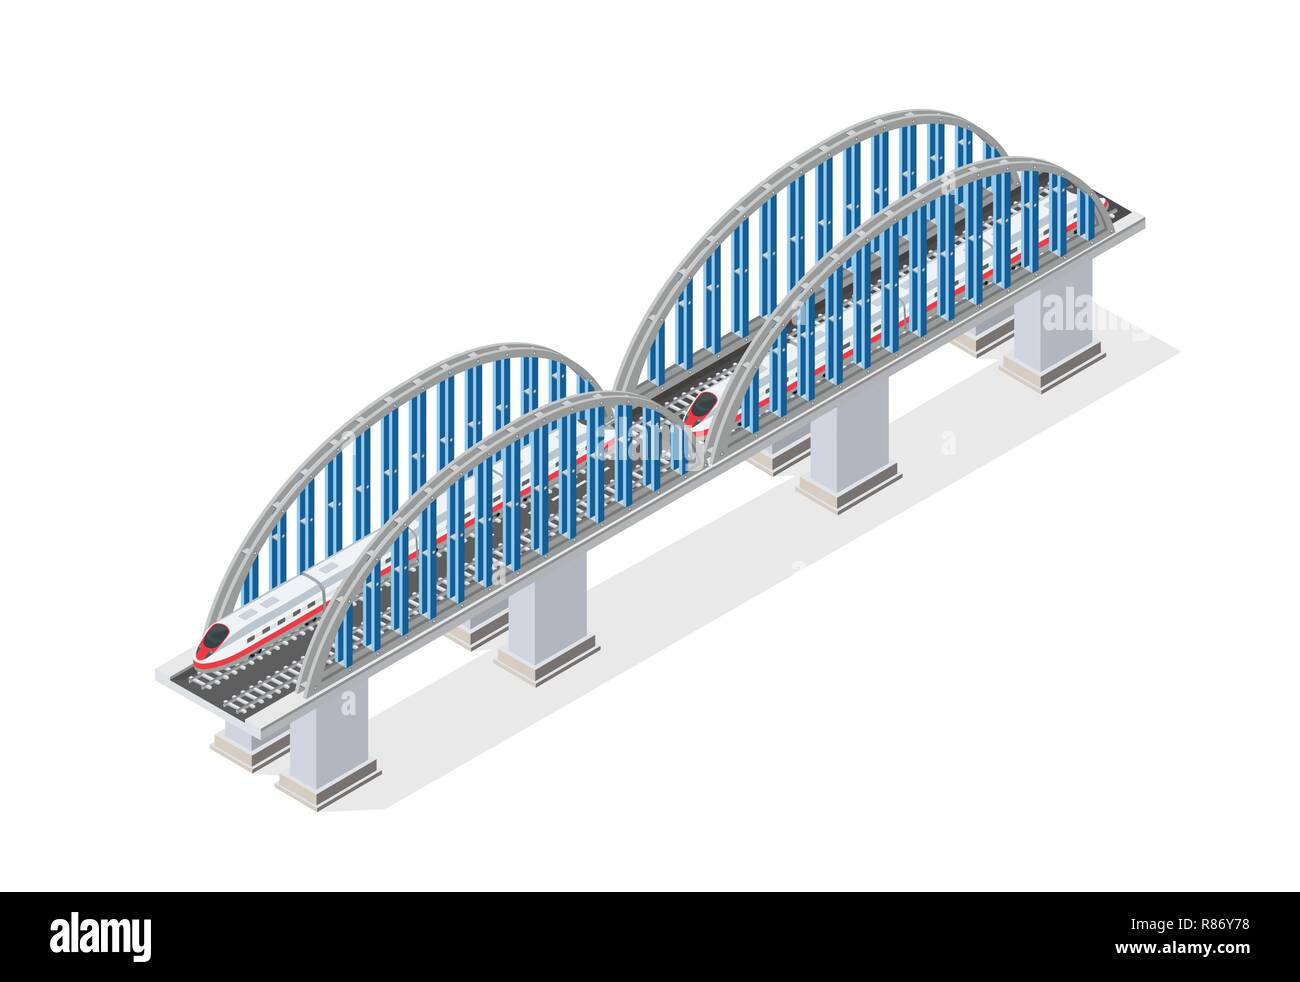 Railroad isometric bridge with railway and high-speed train by locomotive. Elements of urban transport transportation infrastructure - Stock Vector